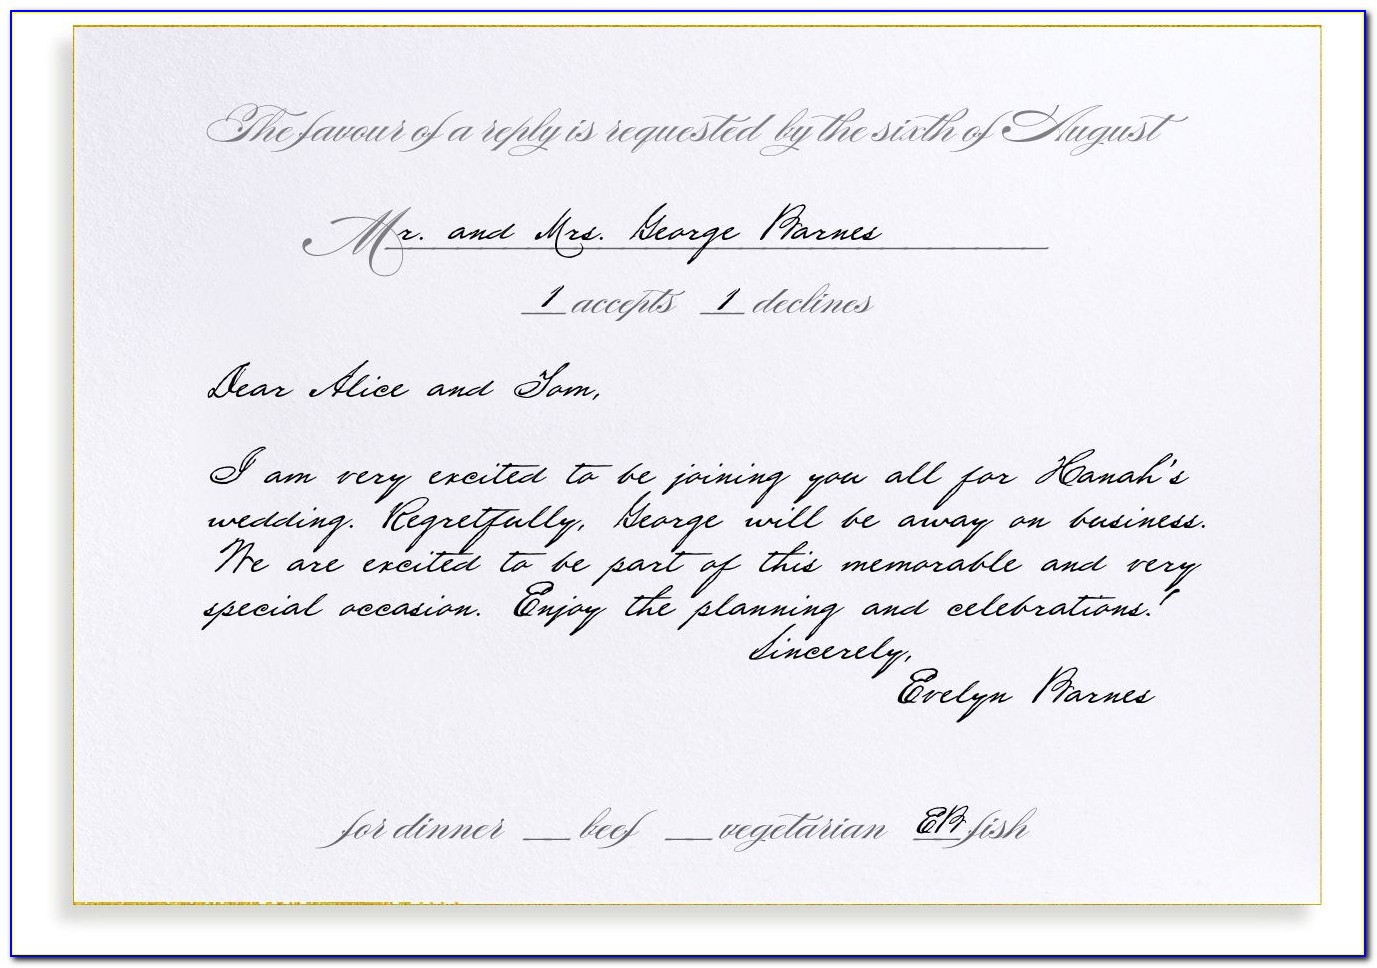 Rsvp Meaning In Wedding Cards